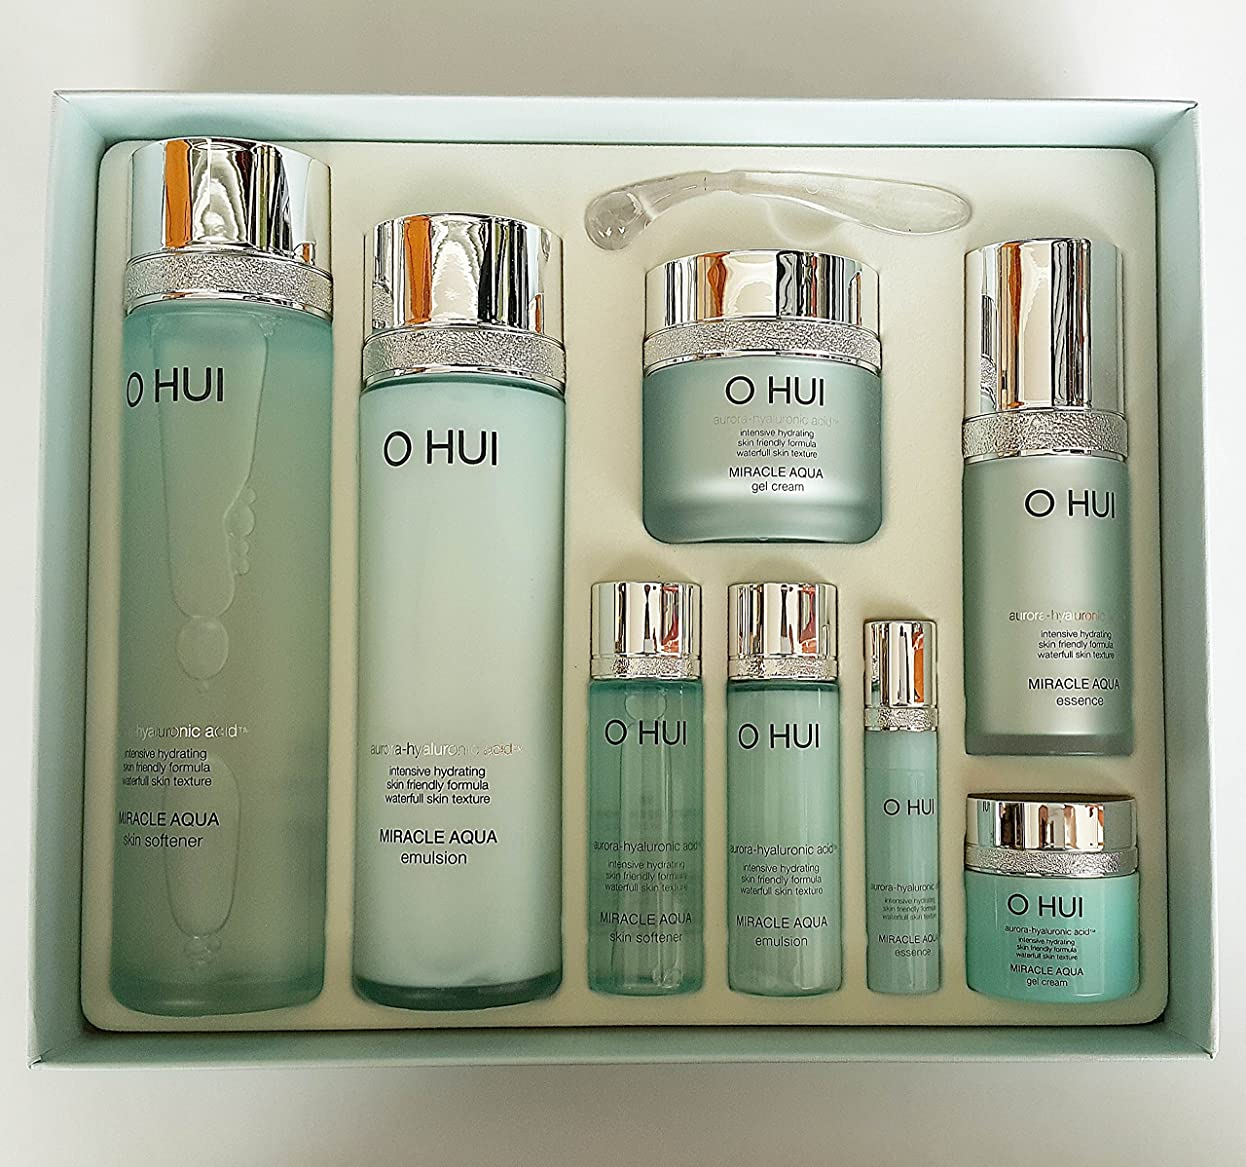 消費直径彫刻Ohui Miracle Aqua Basic 4-piece Special Gift Set 2015 New[行輸入品]